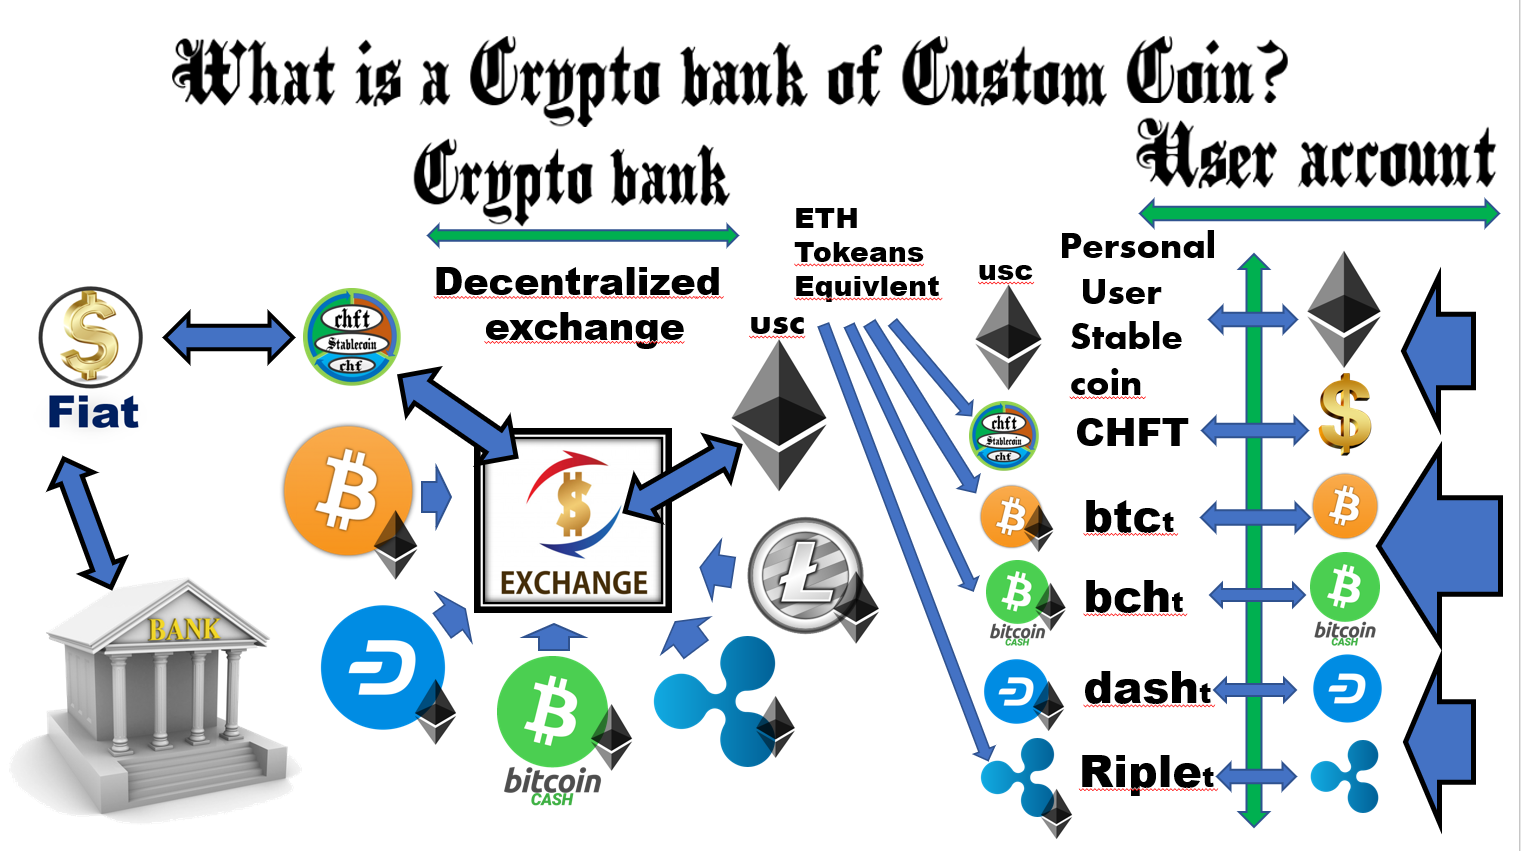 bank coin crypto currency converter